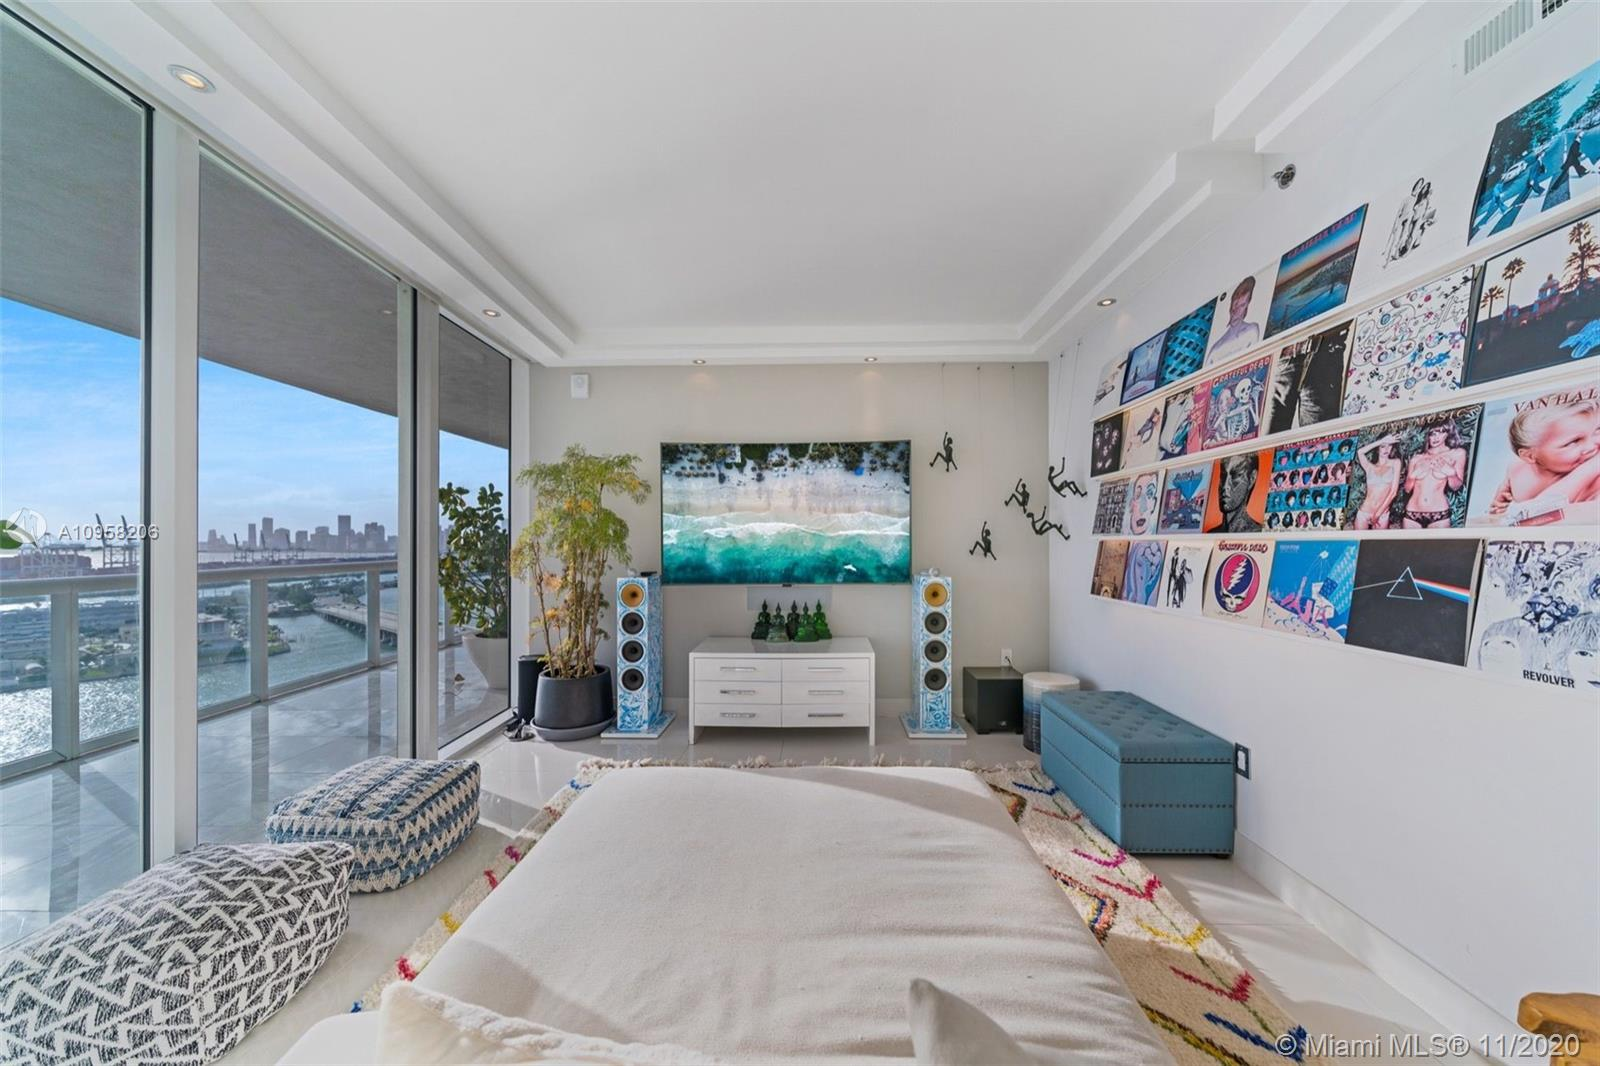 this unit is very special it has been opened up to allow for the expansive views of downtown miami and sunsets. 3rd bedroom can easily be converted back. this set up opens up the views tremendously and make the unit much more desirable. all work was done by architect and with permits. Matterport 3D available . showings to qualified buyers only. seller occupied.